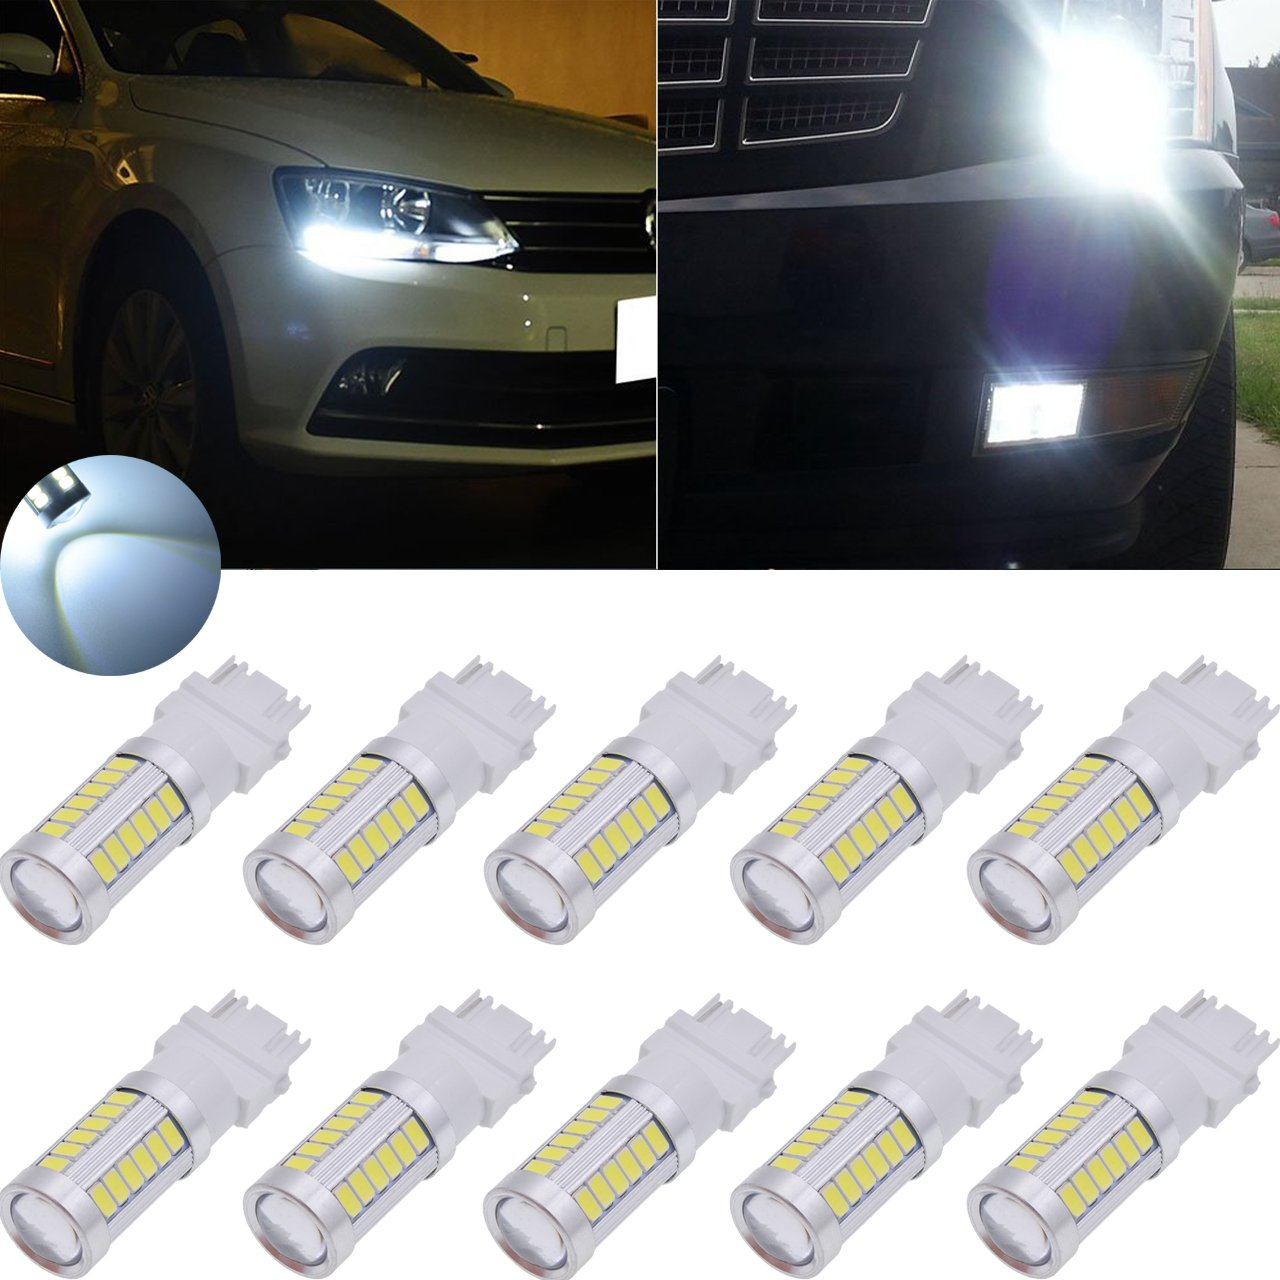 TUINCYN 3157 3155 3156 3157A 3457A LED Brake Light Bulb White 5630 33SMD 8000K 900 Lumens Super Bright Turn Signal Light Tail Back Up Reverse Light Parking Light DC 12V (Pack of 2)